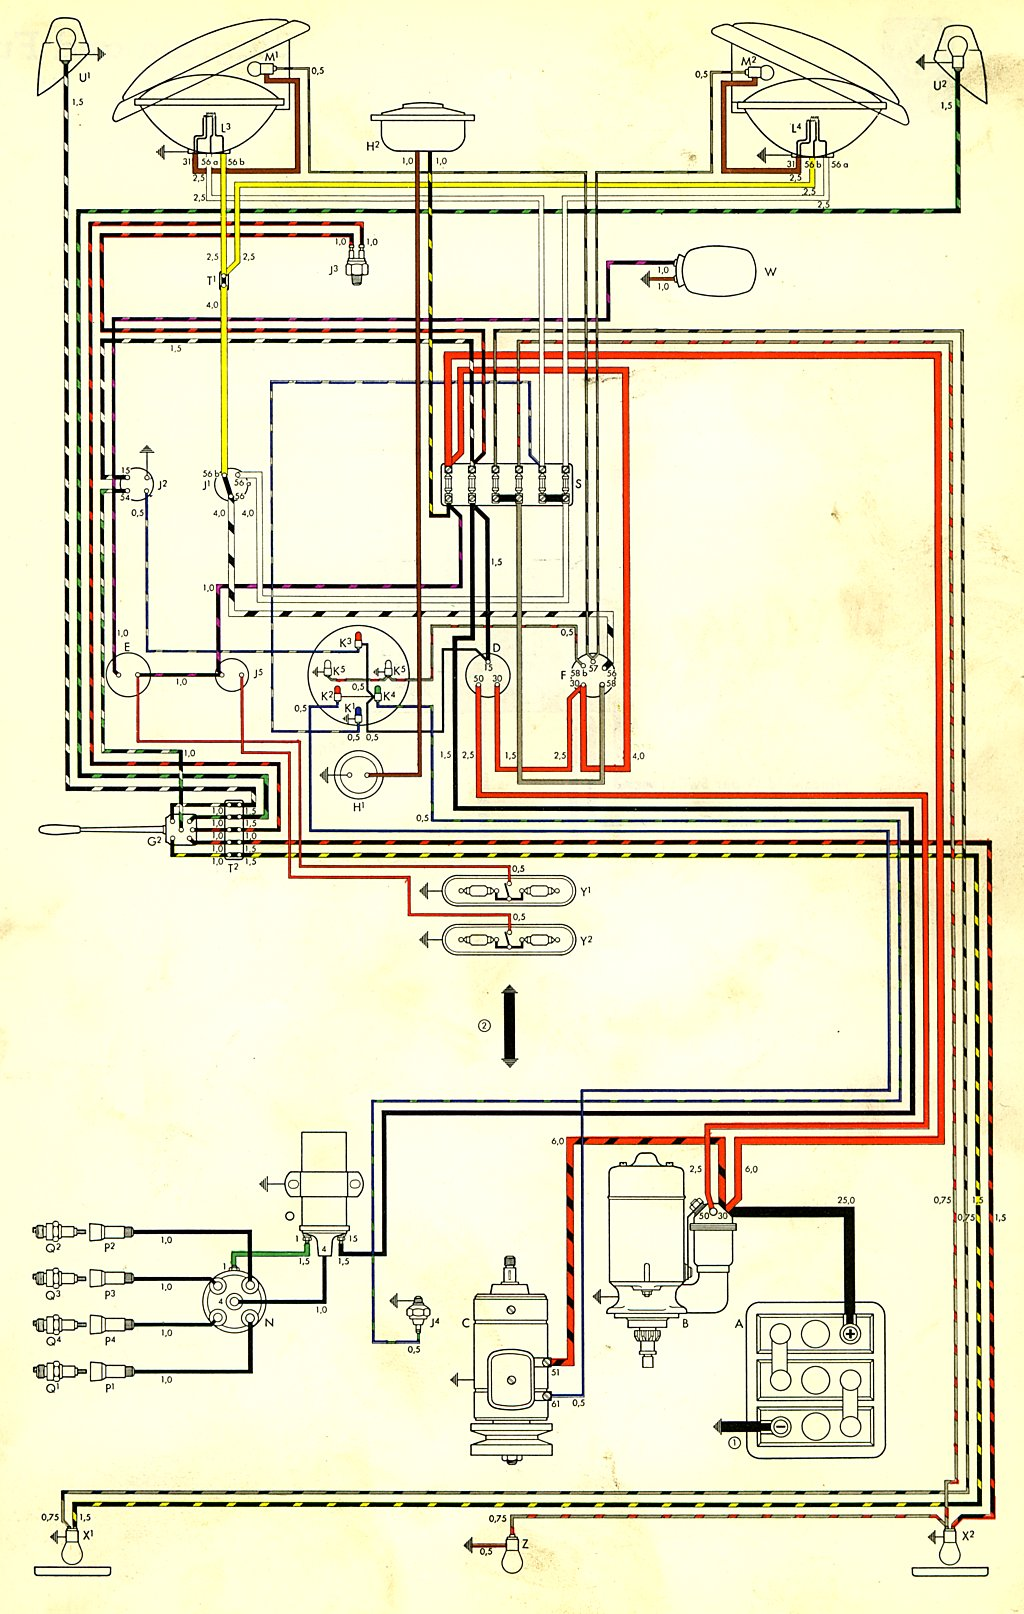 bus_59_USA bus wiring diagram vw wiring harness diagram \u2022 wiring diagrams j 1973 Super Beetle Wiring Diagram at crackthecode.co